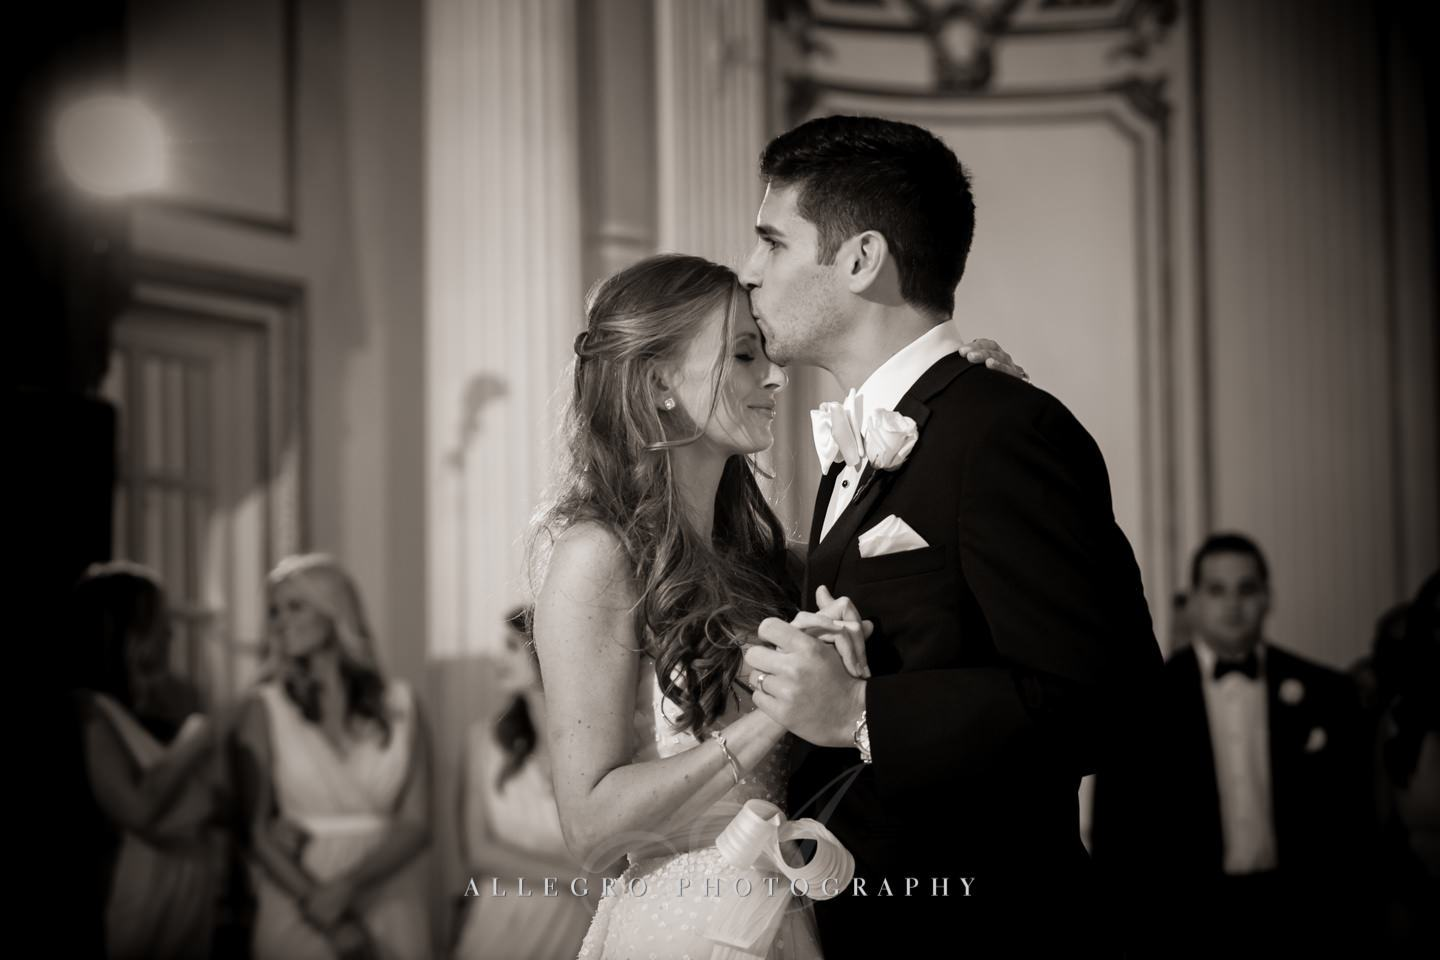 fairmont copley plaza first dance - photo by allegro photography